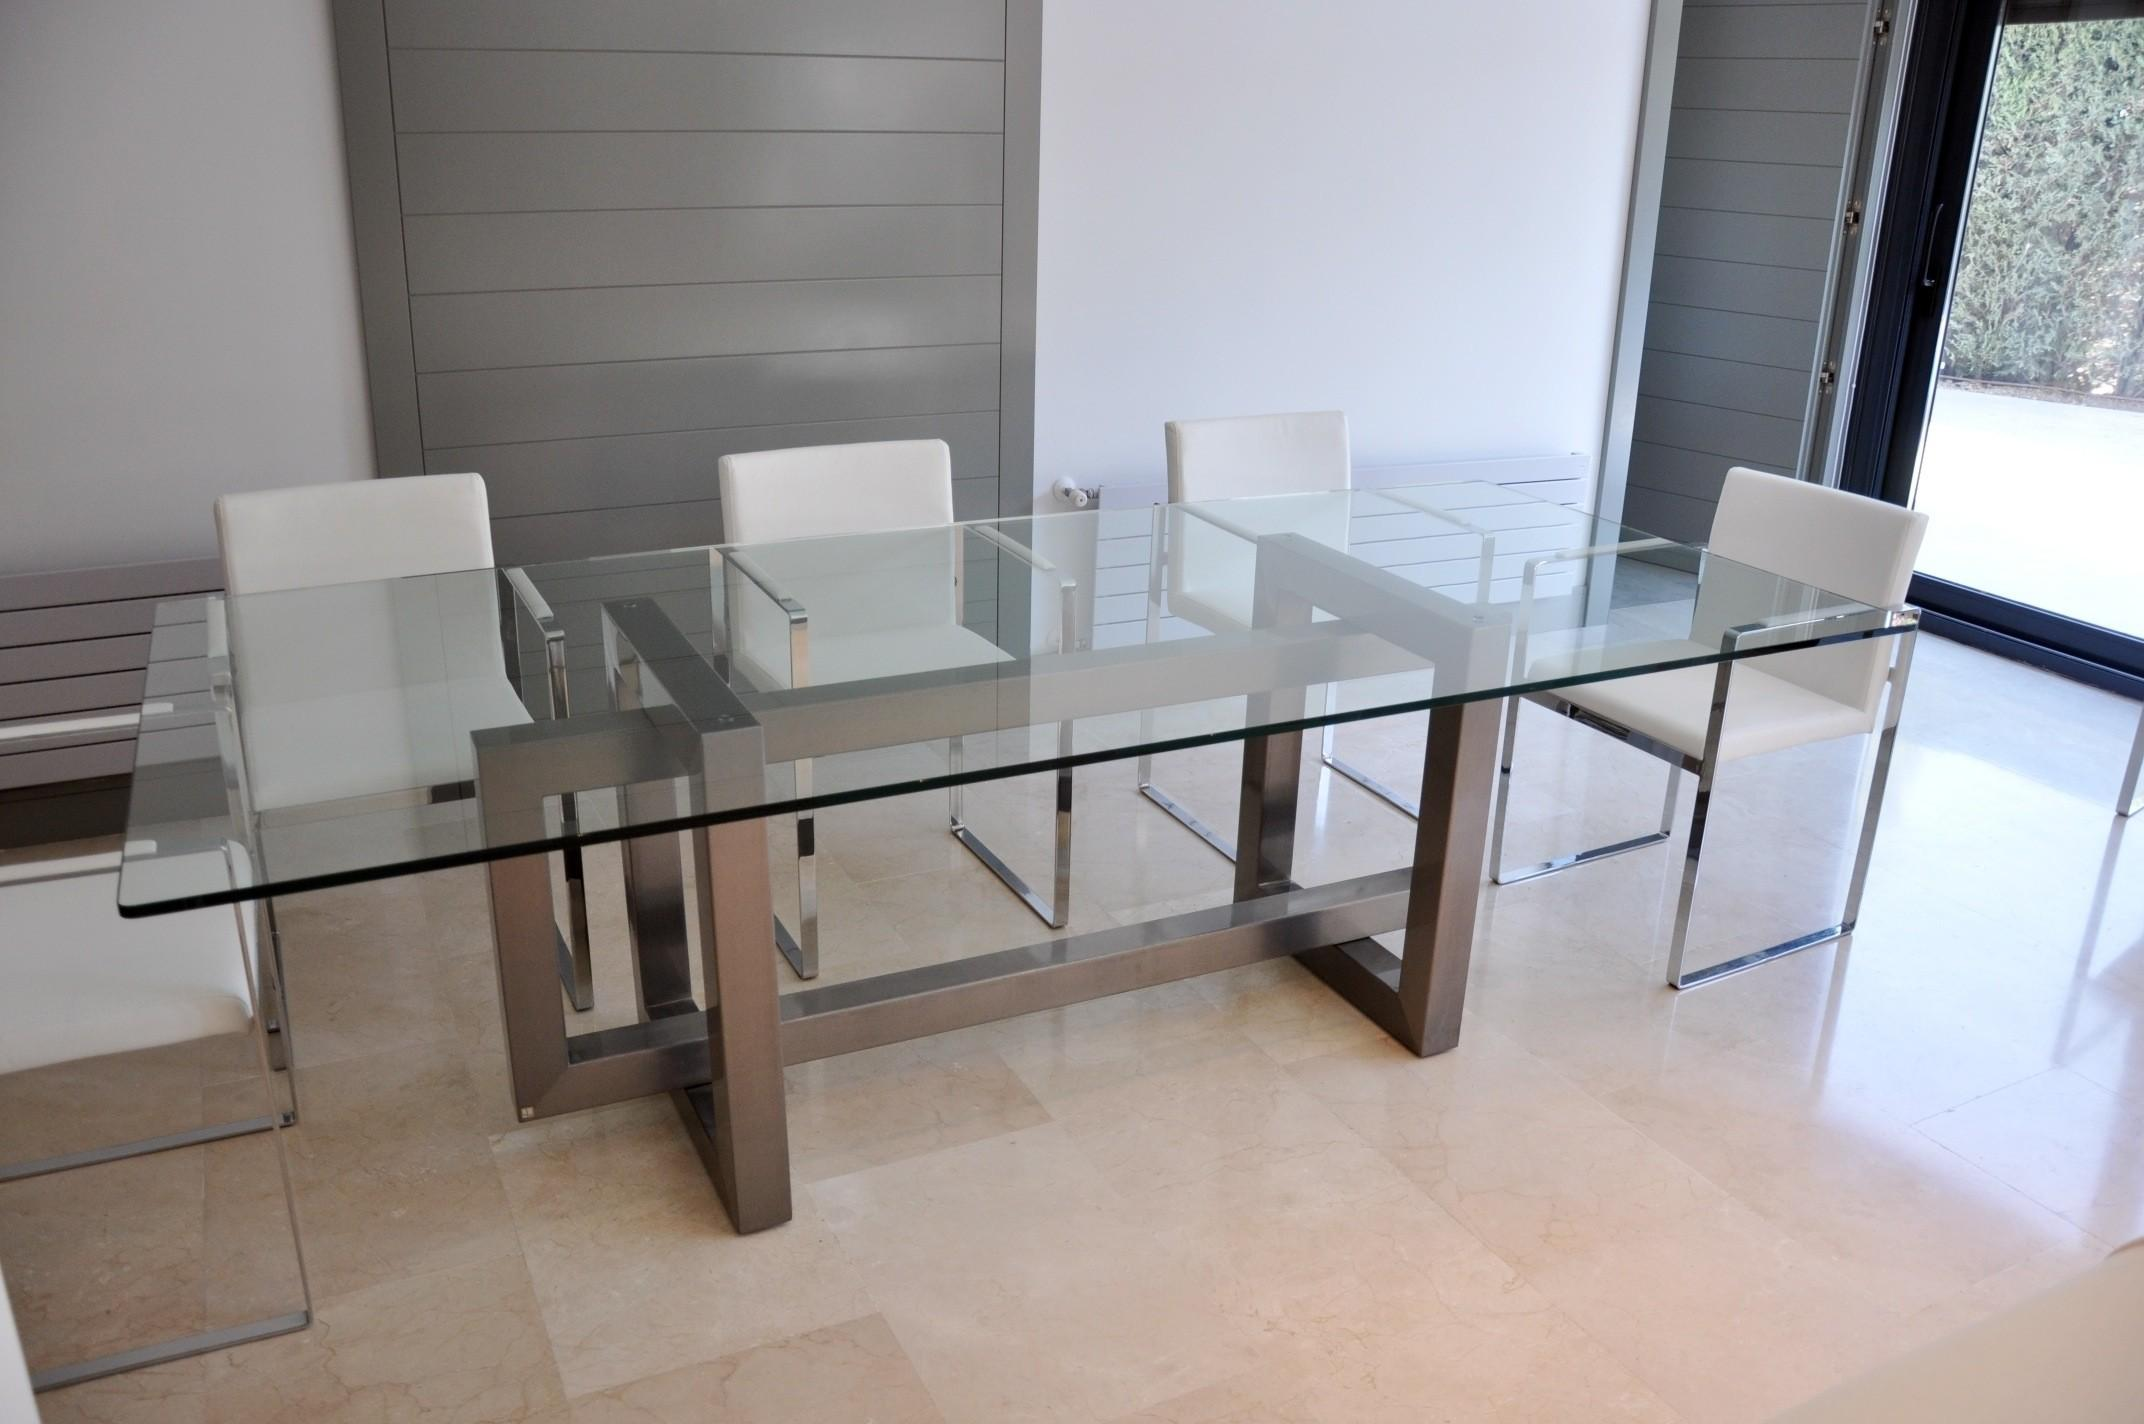 Sleek Stainless Steel Dining Tables Room Cabinet